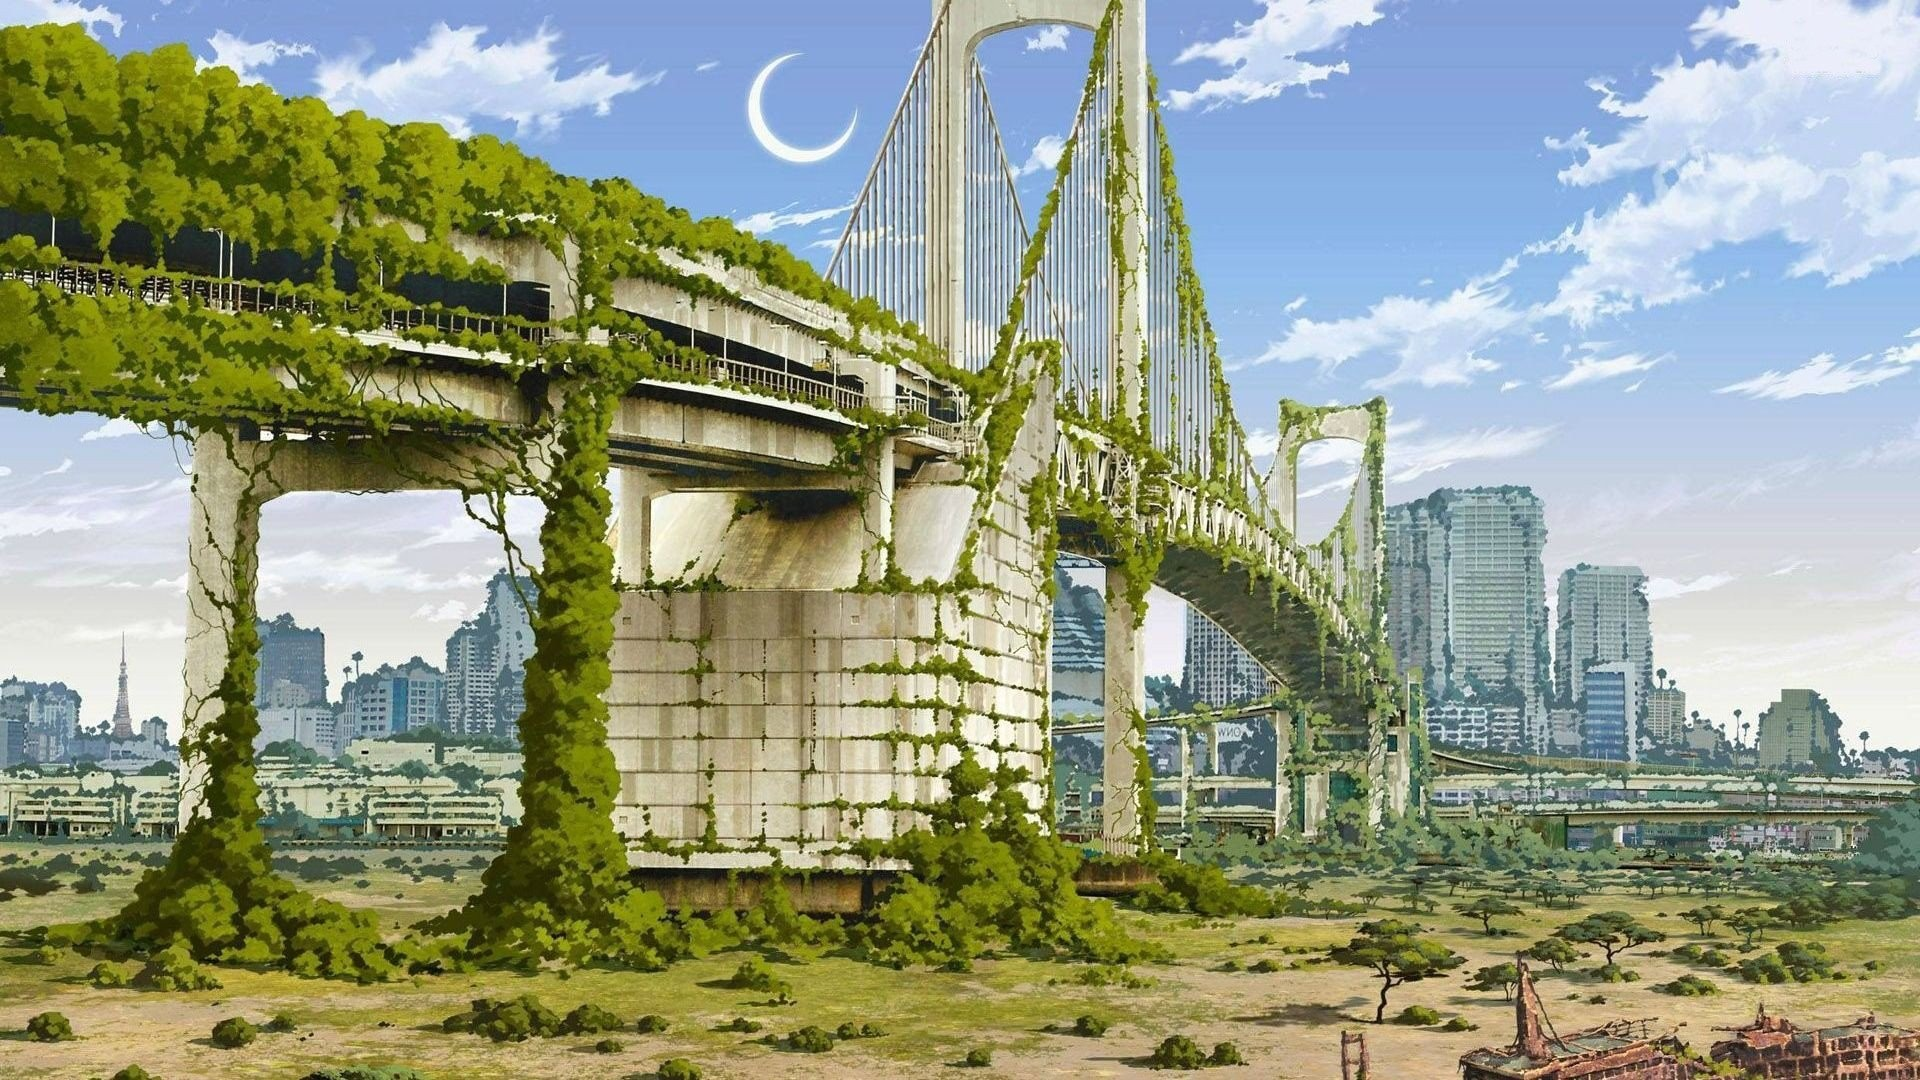 1920x1080 Anime Artwork Cities Nature Japan Fantasy Art Apocalyptic